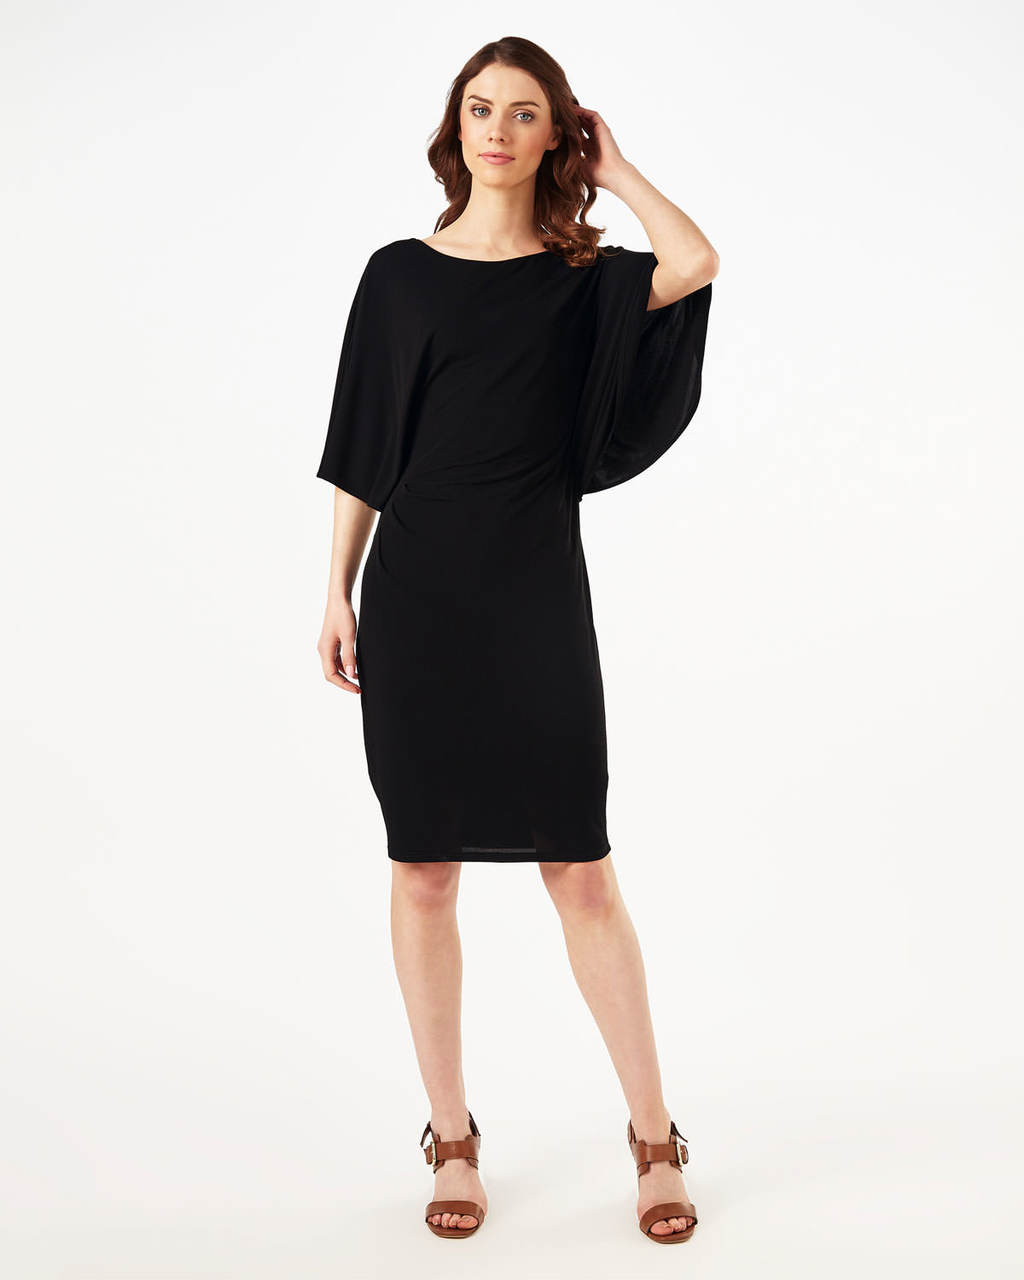 Caley Cape Dress - style: shift; pattern: plain; predominant colour: black; occasions: evening; length: on the knee; fit: body skimming; fibres: viscose/rayon - 100%; sleeve style: cape sleeve; neckline: crew; sleeve length: 3/4 length; pattern type: fabric; texture group: jersey - stretchy/drapey; season: s/s 2016; wardrobe: event